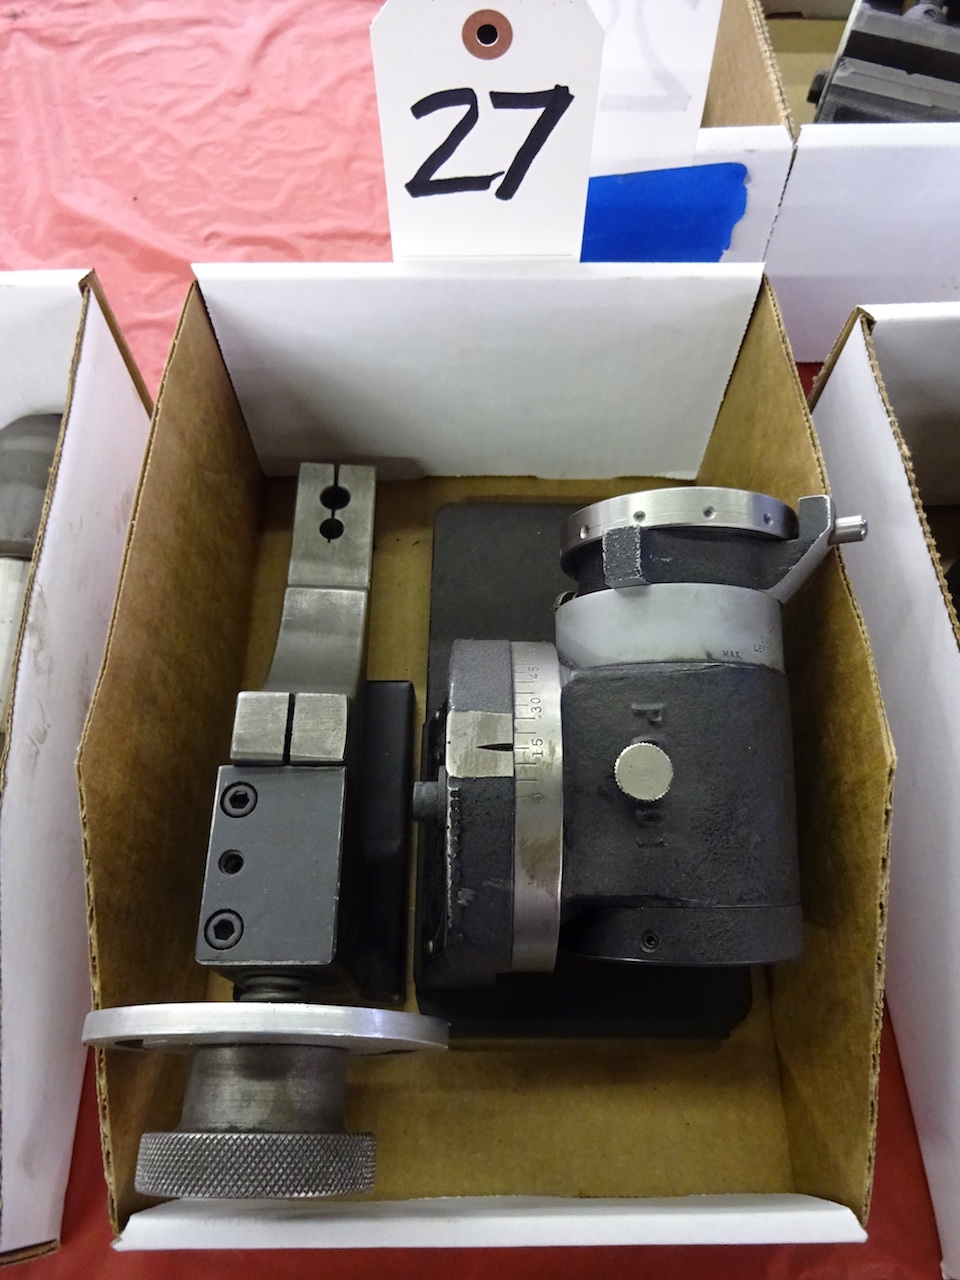 Lot 27 - Poly-Choke Sharpening Fixture for Taps & Drills